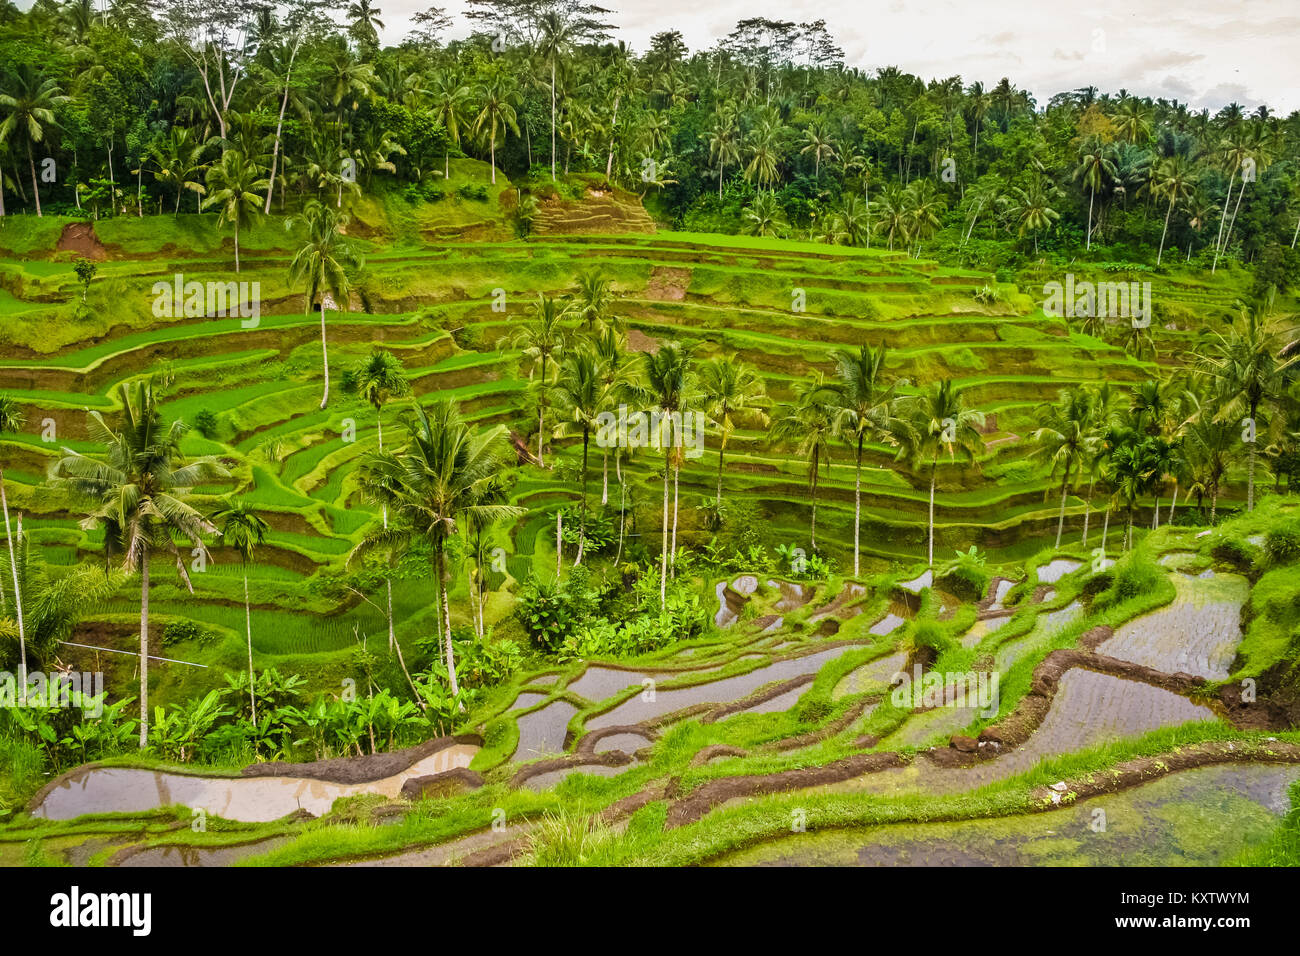 The Tegallalang subak rice terrace system in Ubud, Bali, Indonesia. - Stock Image